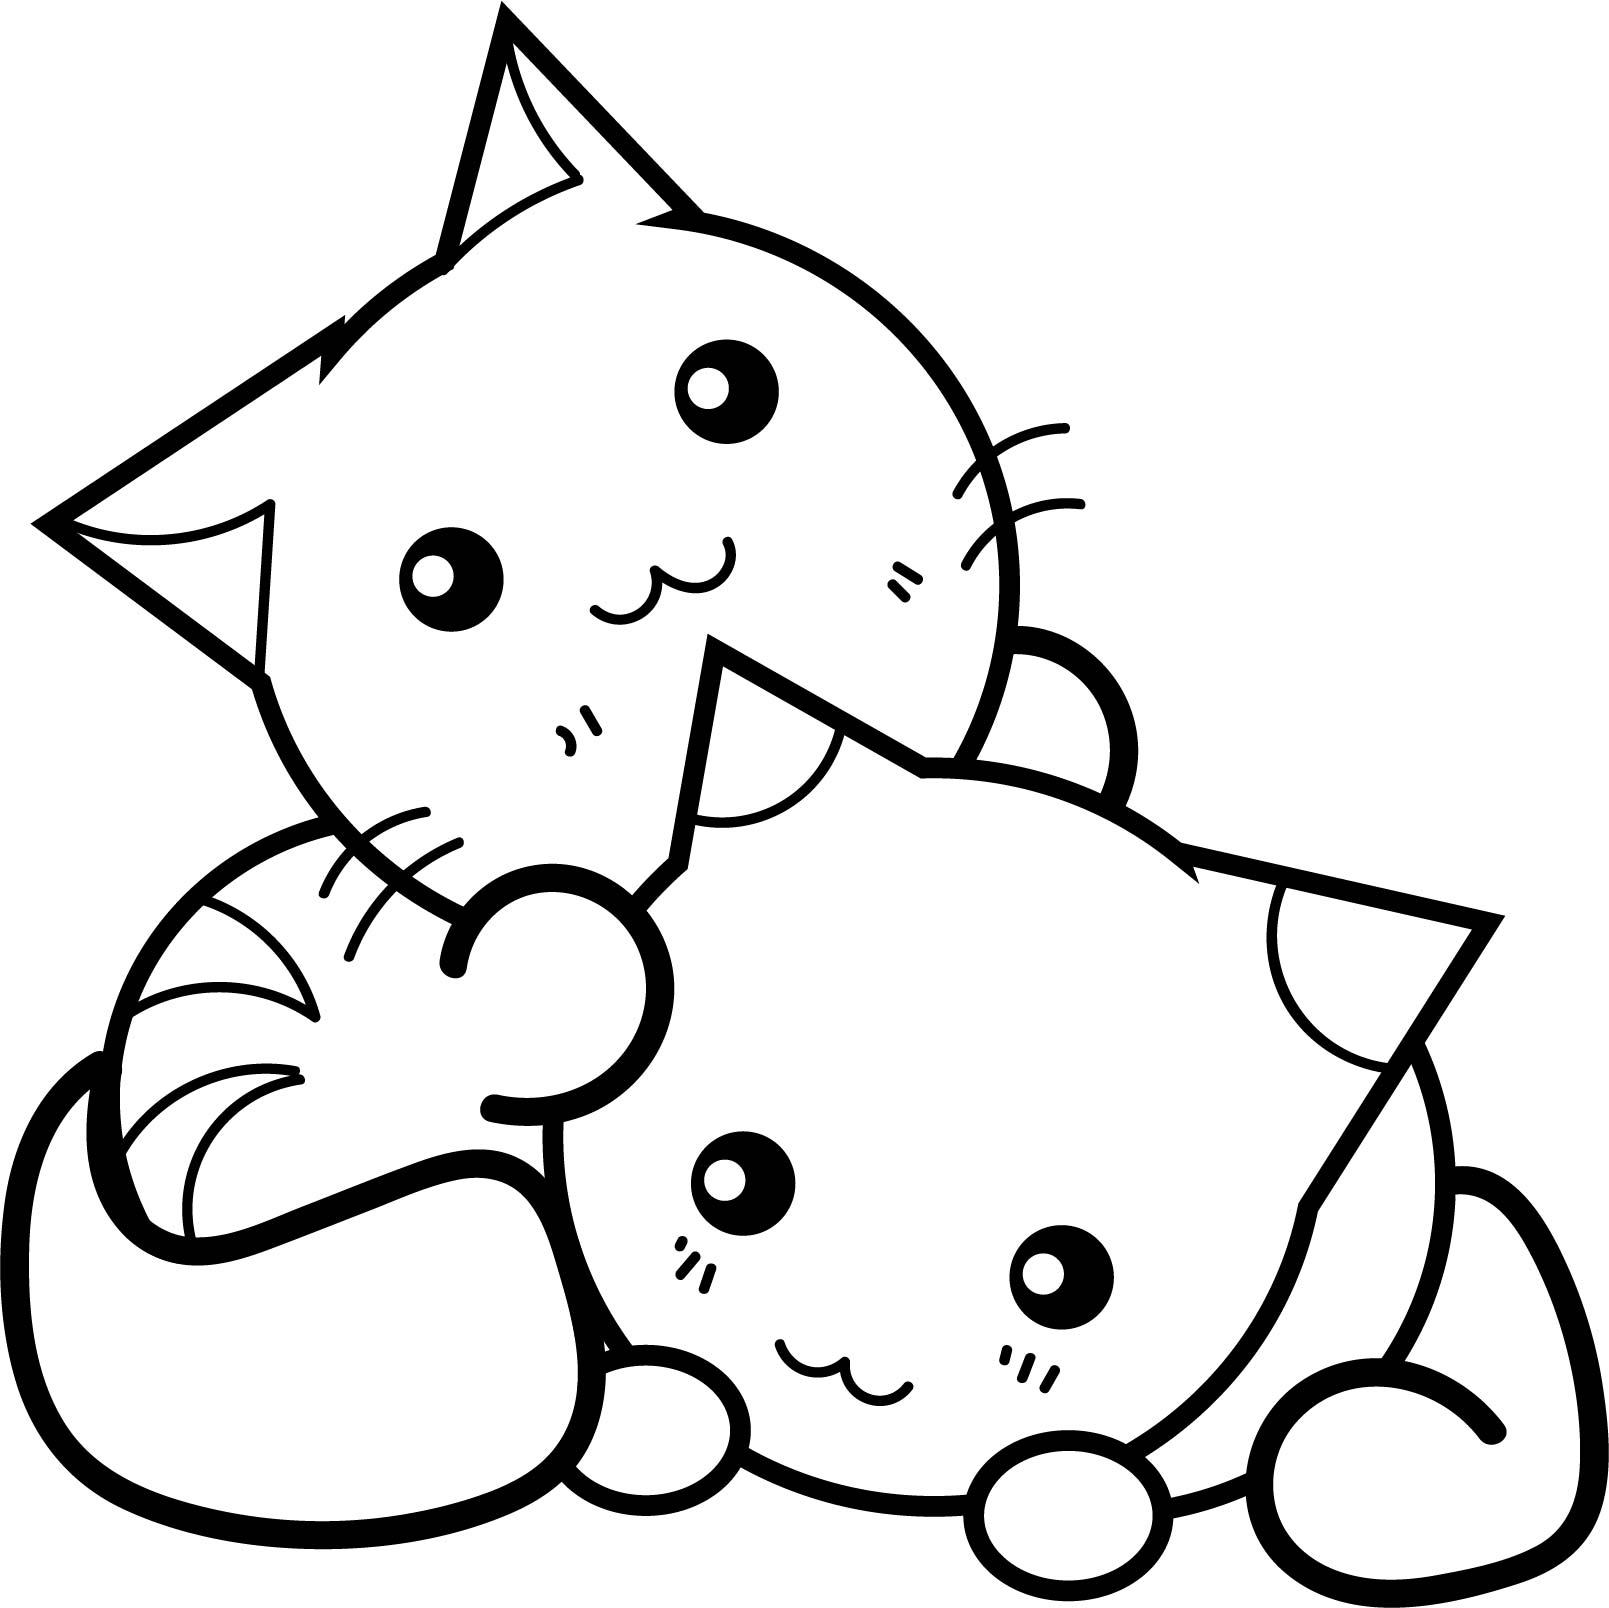 cat coloring page - sweet manga japan cats coloring page